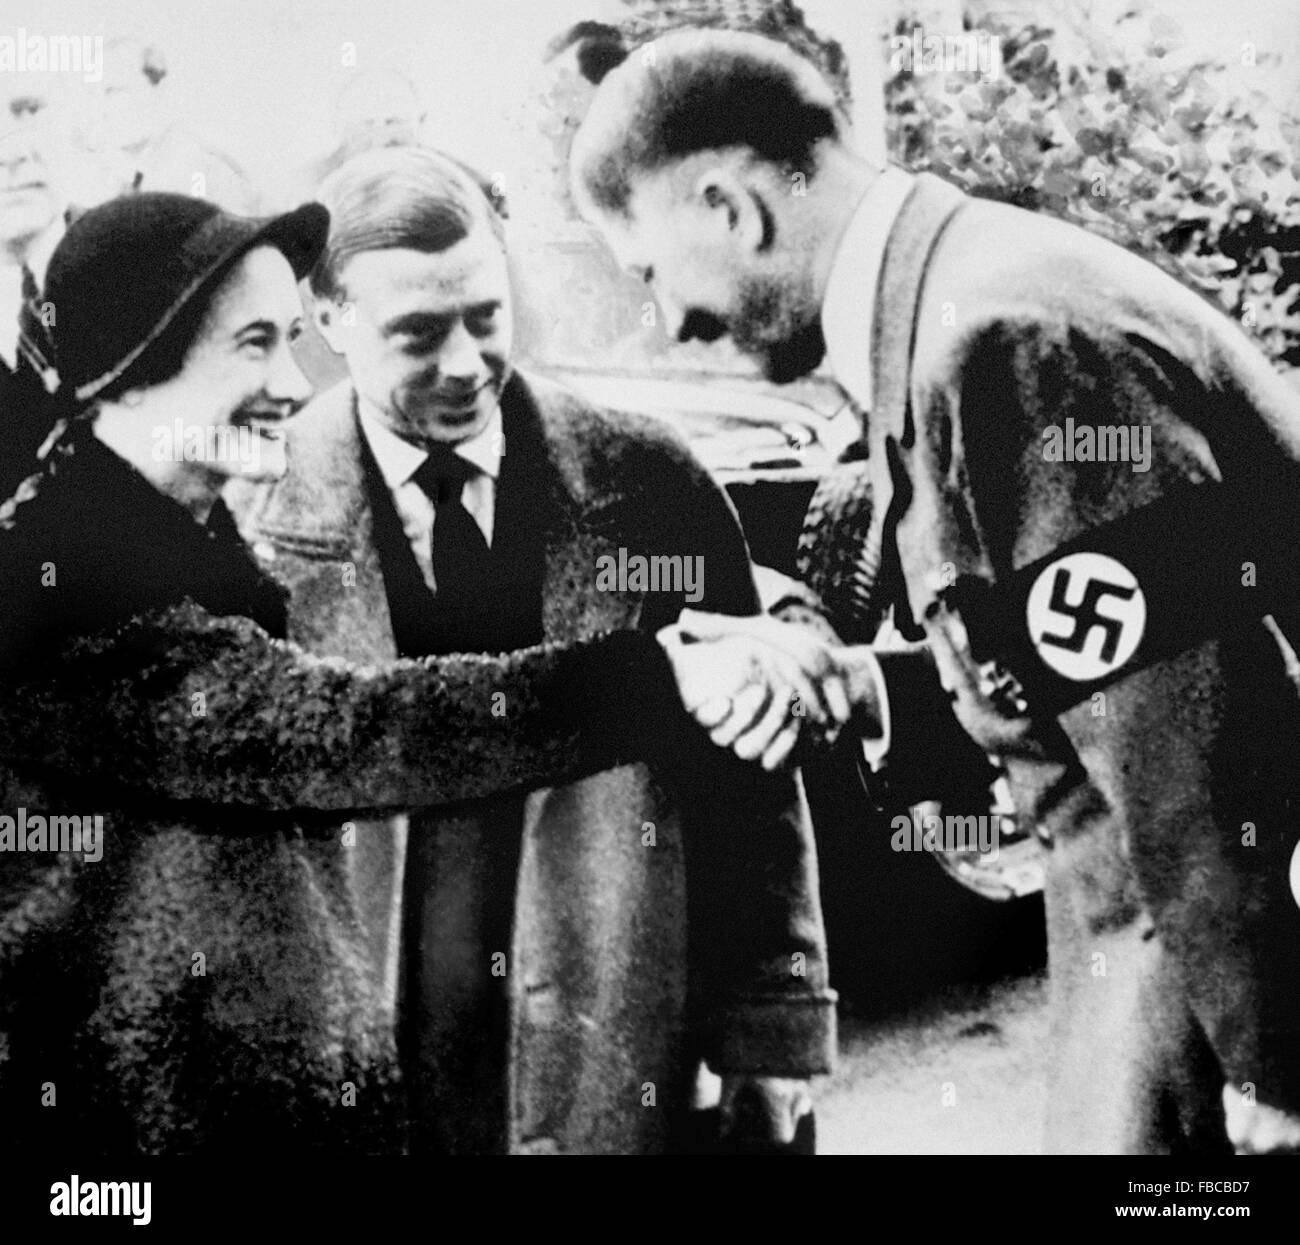 The Duke and Duchess of Windsor meeting Adolf Hitler in Munich in 1937 - Stock Image